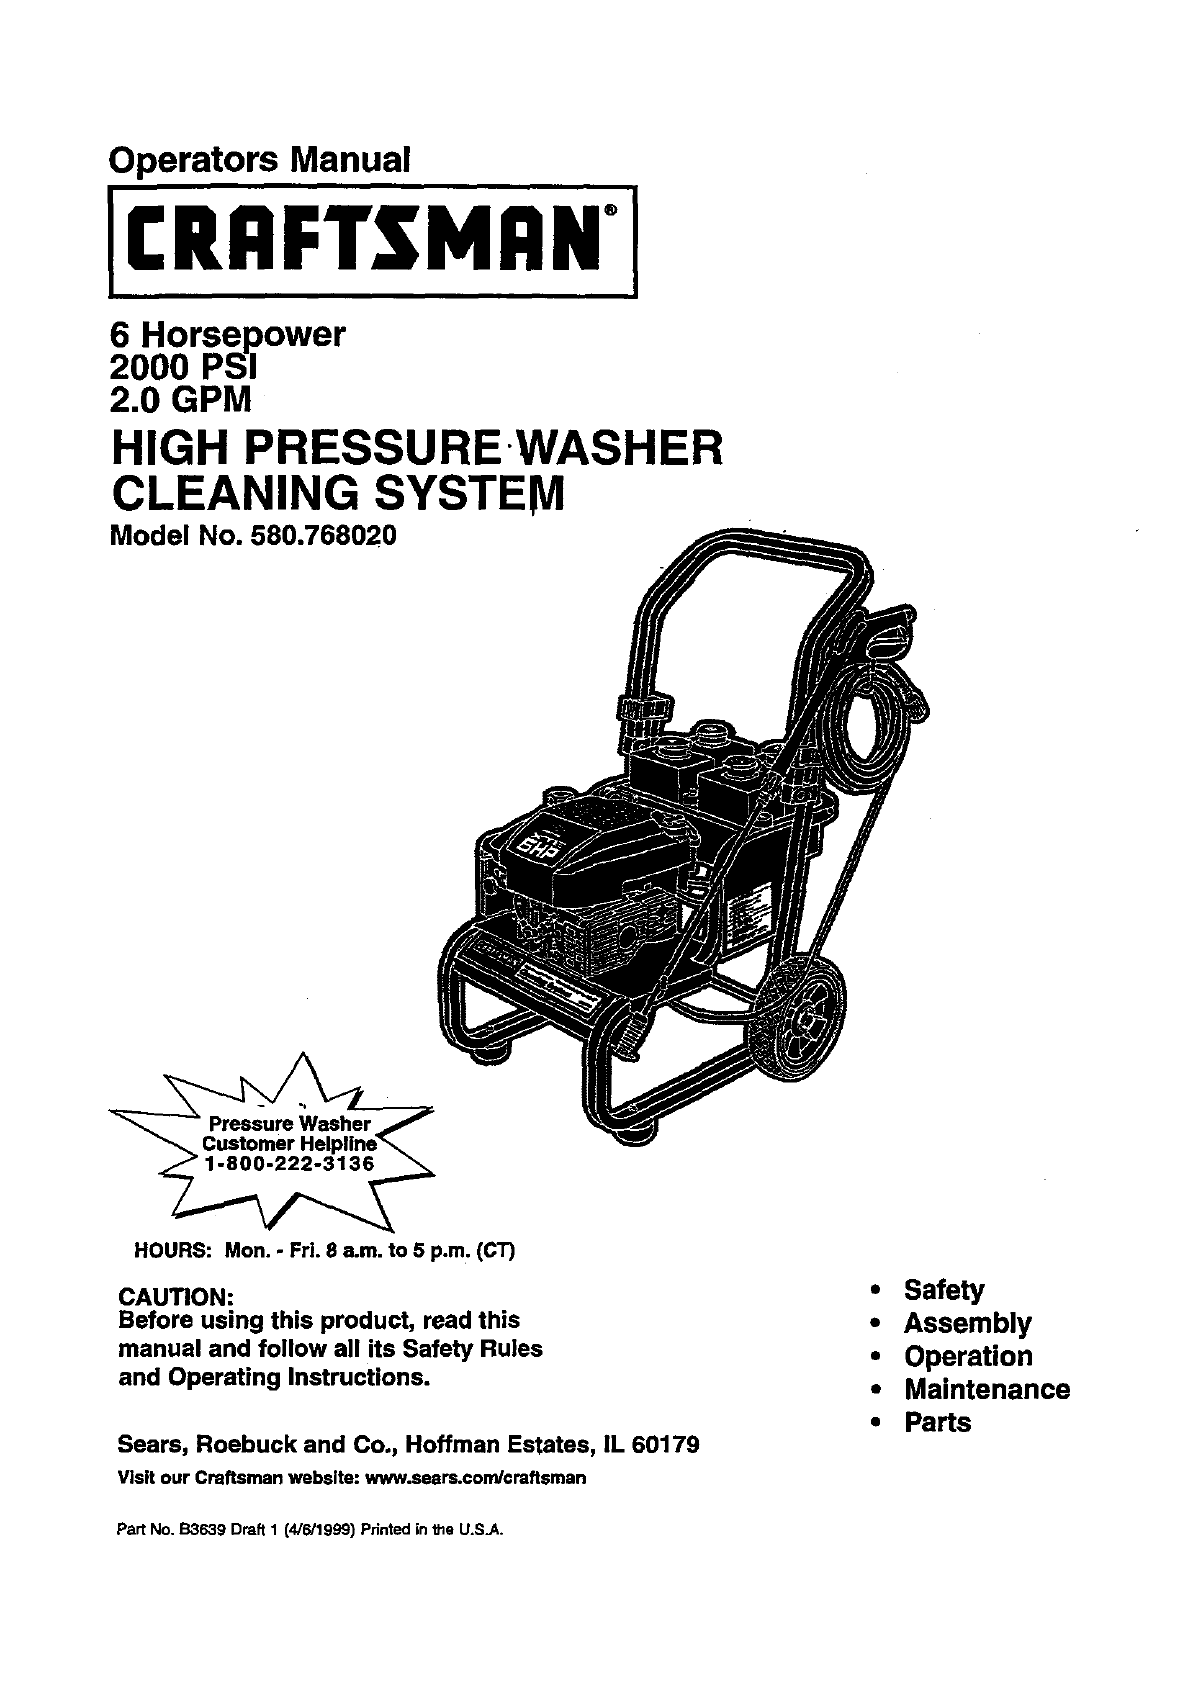 Craftsman Pressure Washer 580.768020 User Guide